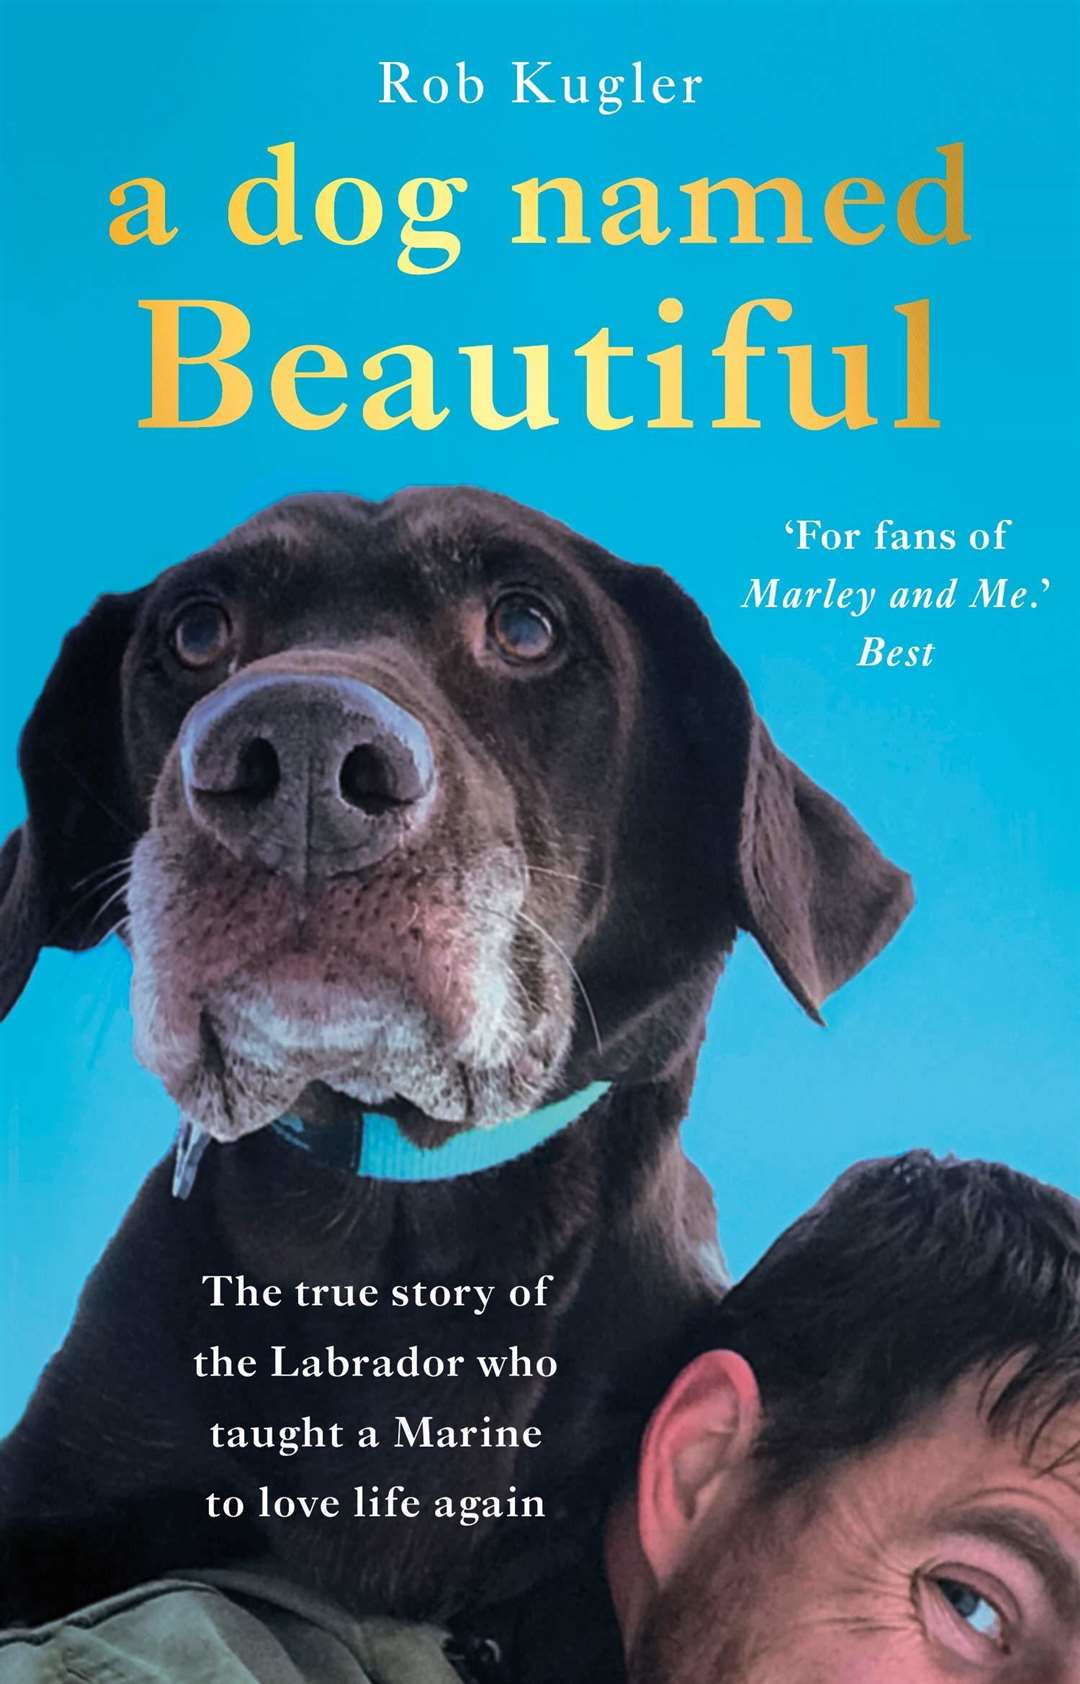 A Dog Named Beautiful by Rob Kugler.